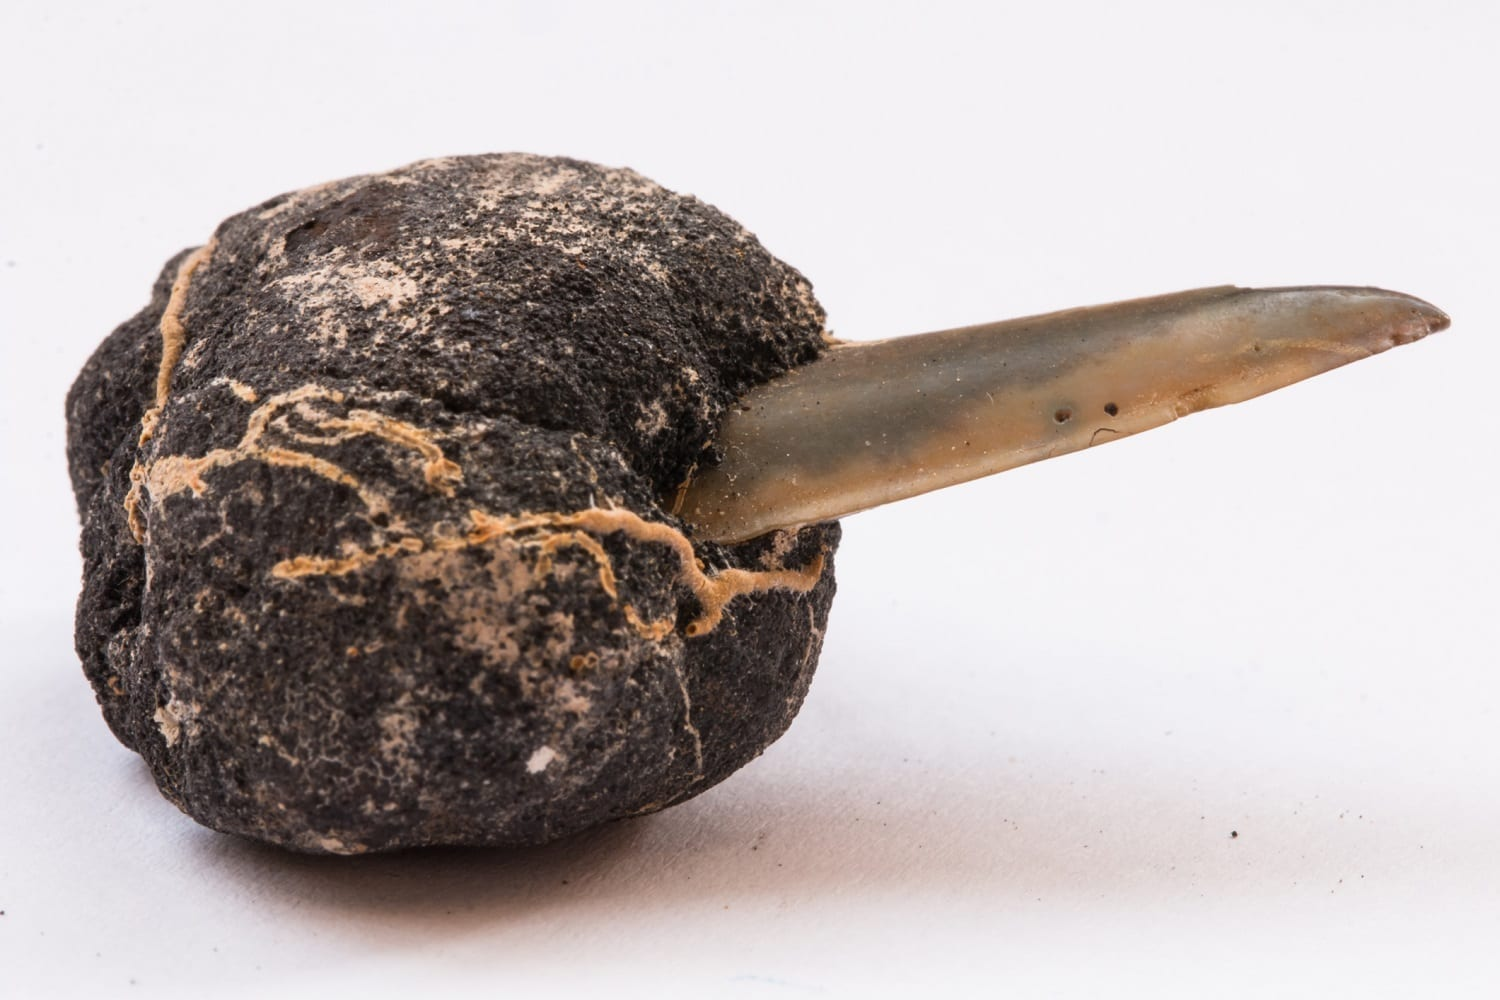 Ferromanganese/Polymetallic nodule around a shark's tooth from the Pacific Ocean: ID 101386935 © Vsg Art Stock Photography And Paintings   Dreamstime.com